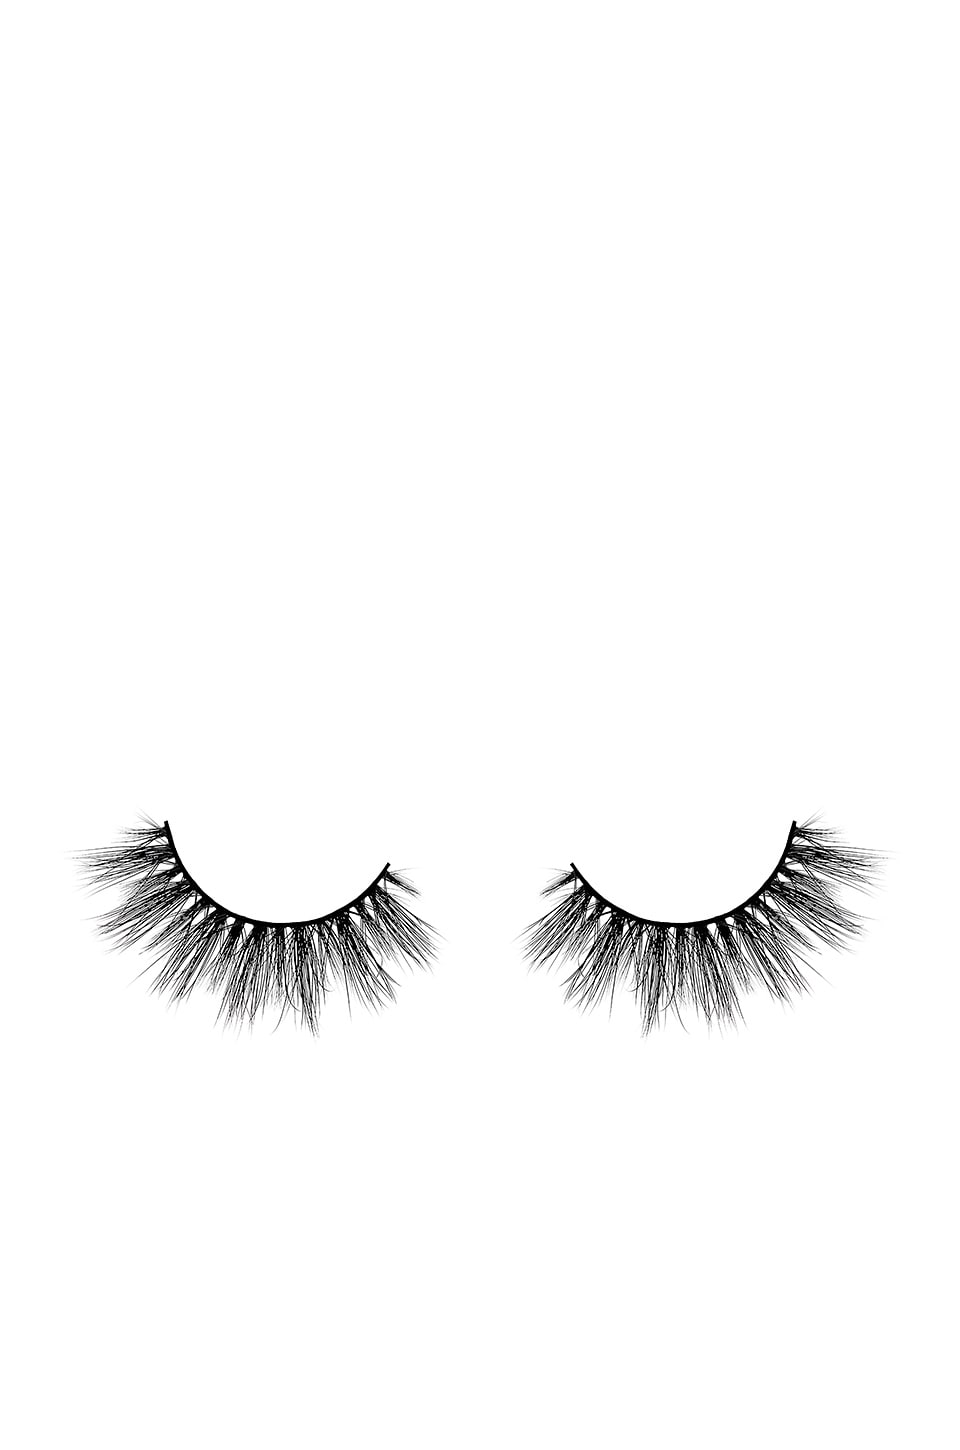 Artemes Lash Greater Love Mink Lashes